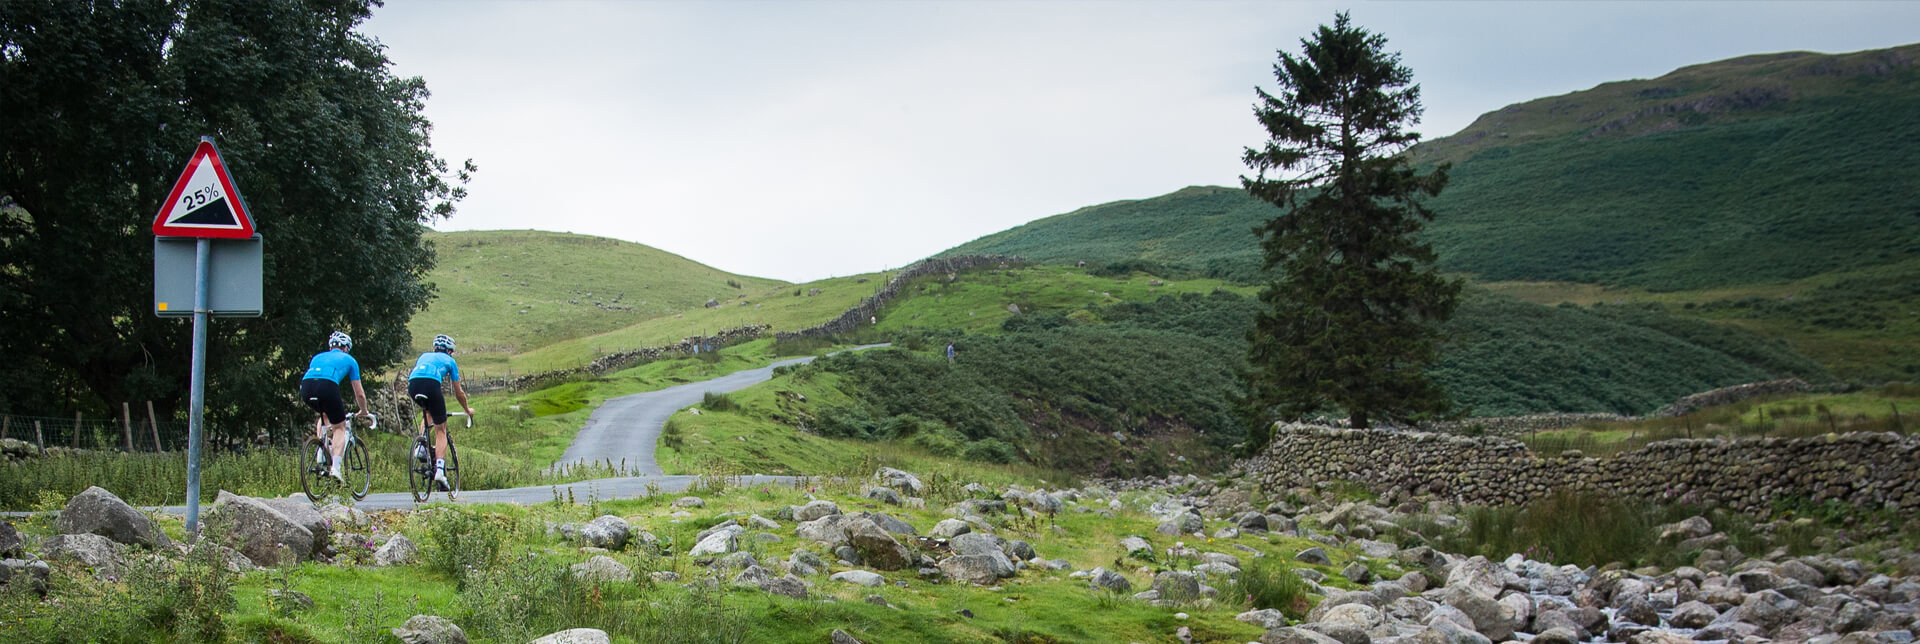 Three Peaks Cycle Challenge. Couple cycling up green English mountain